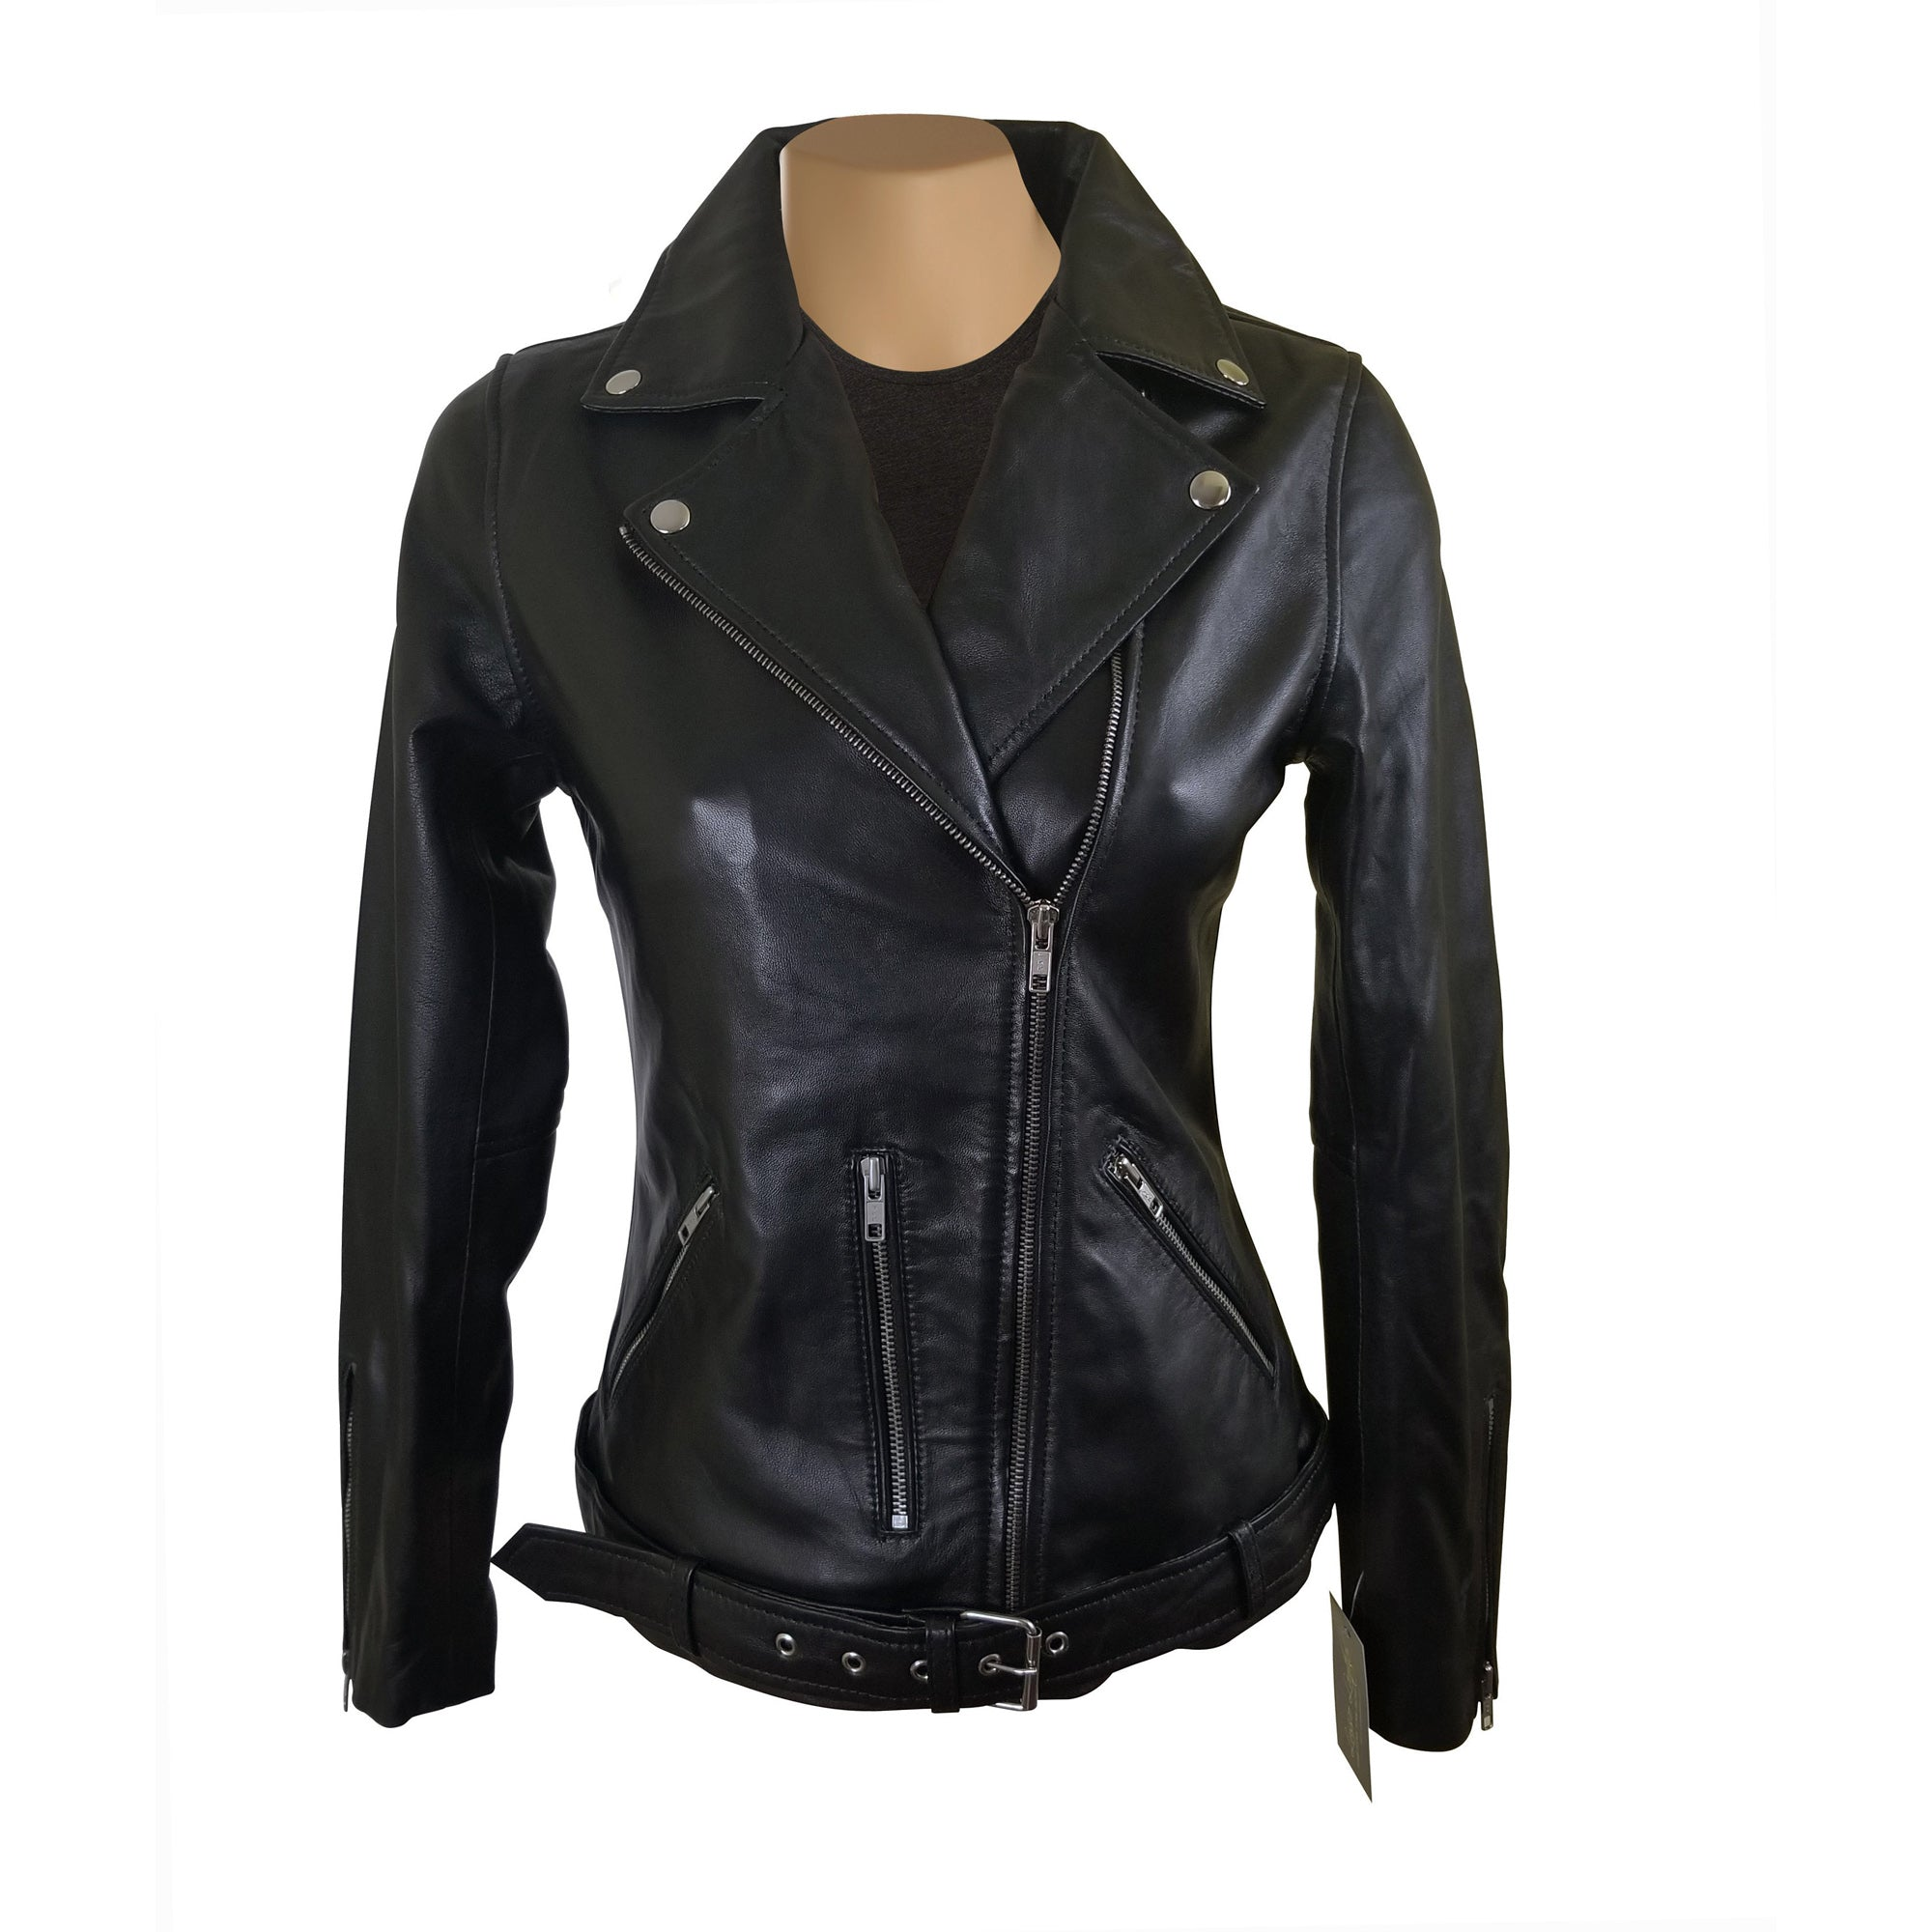 Emilie's black biker style leather jacket with waist belt